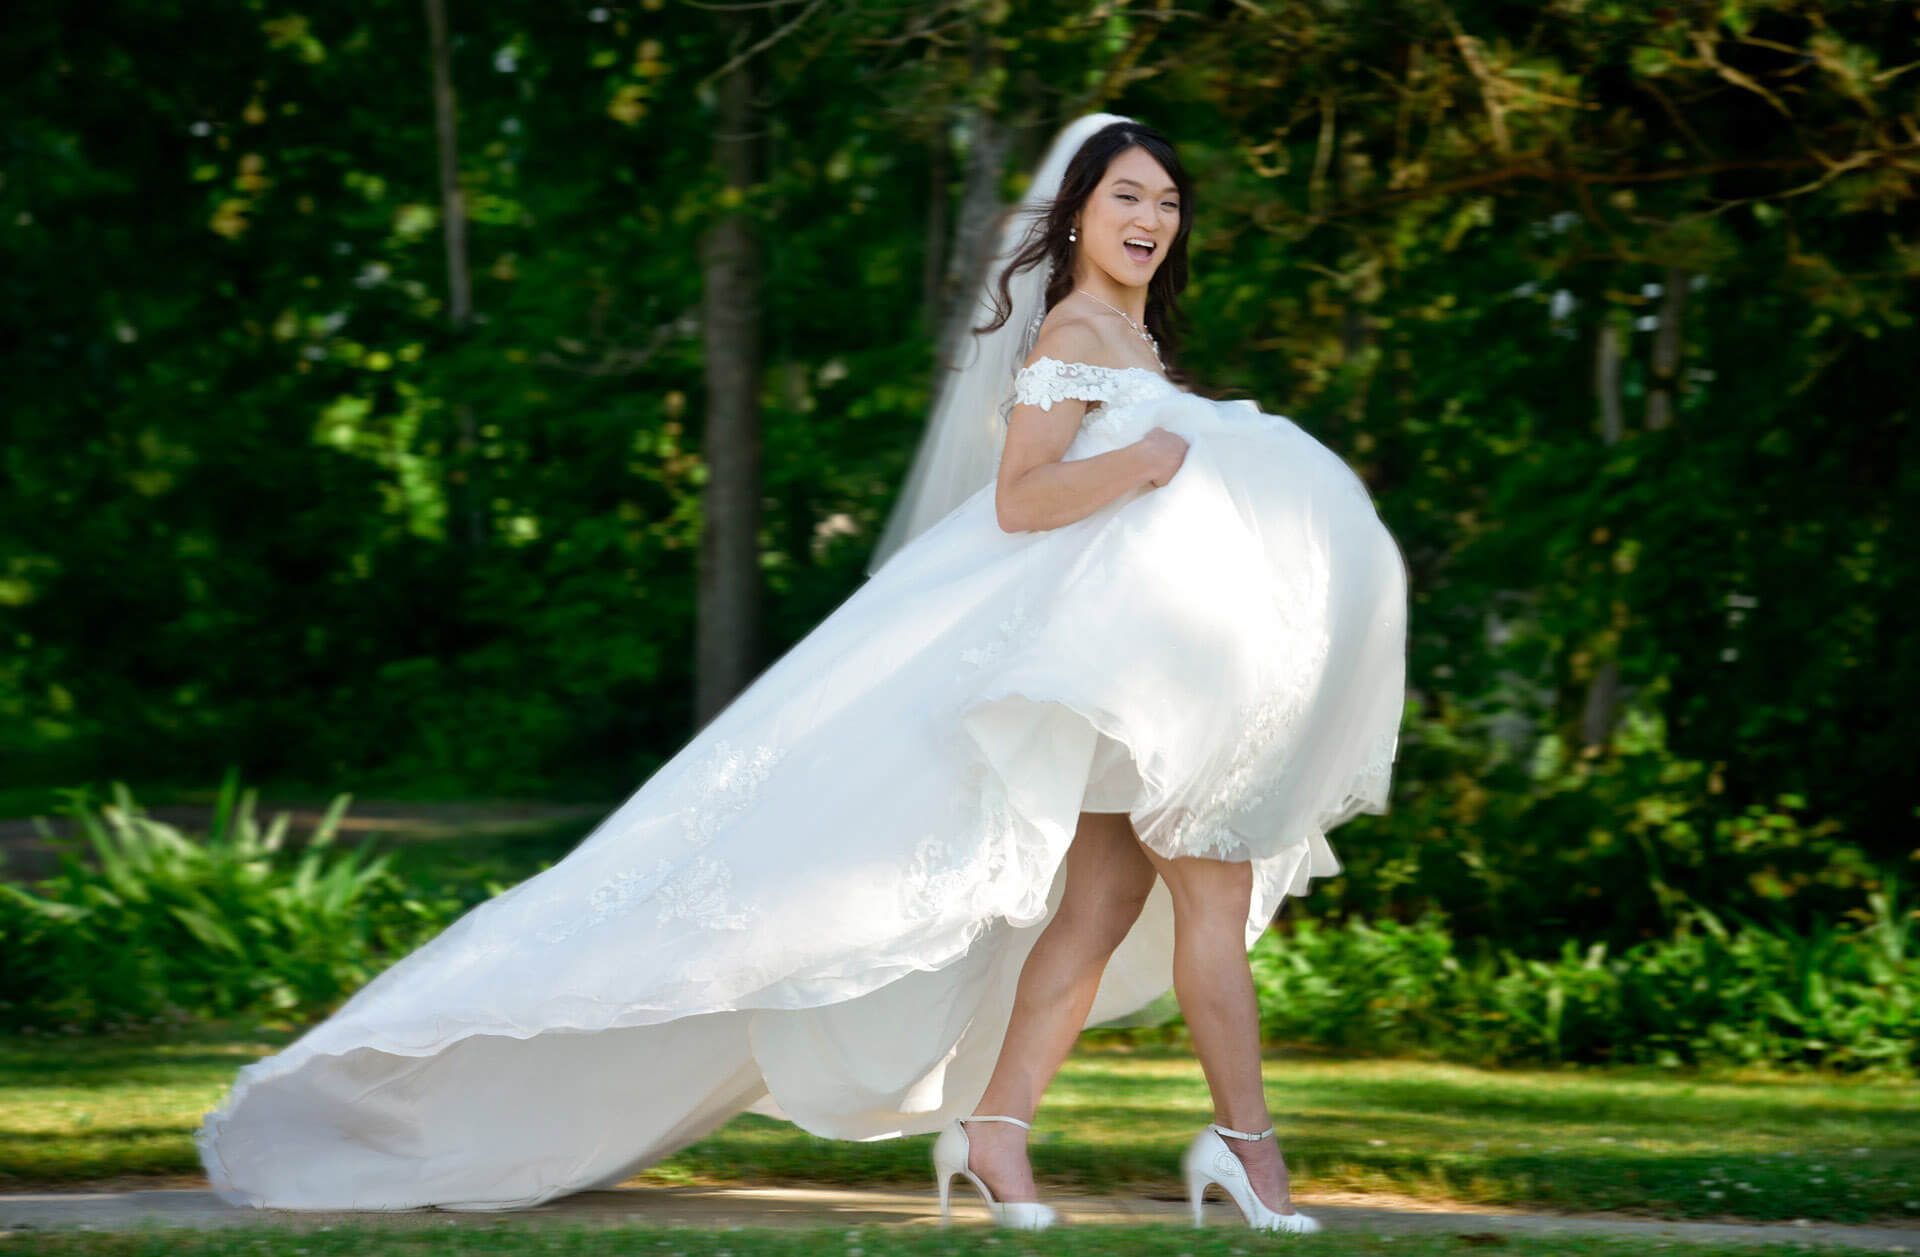 The bride hikes up her wedding dress as she heads out on a hot wedding day at Waldenwoods Resort in Howell, Michigan.